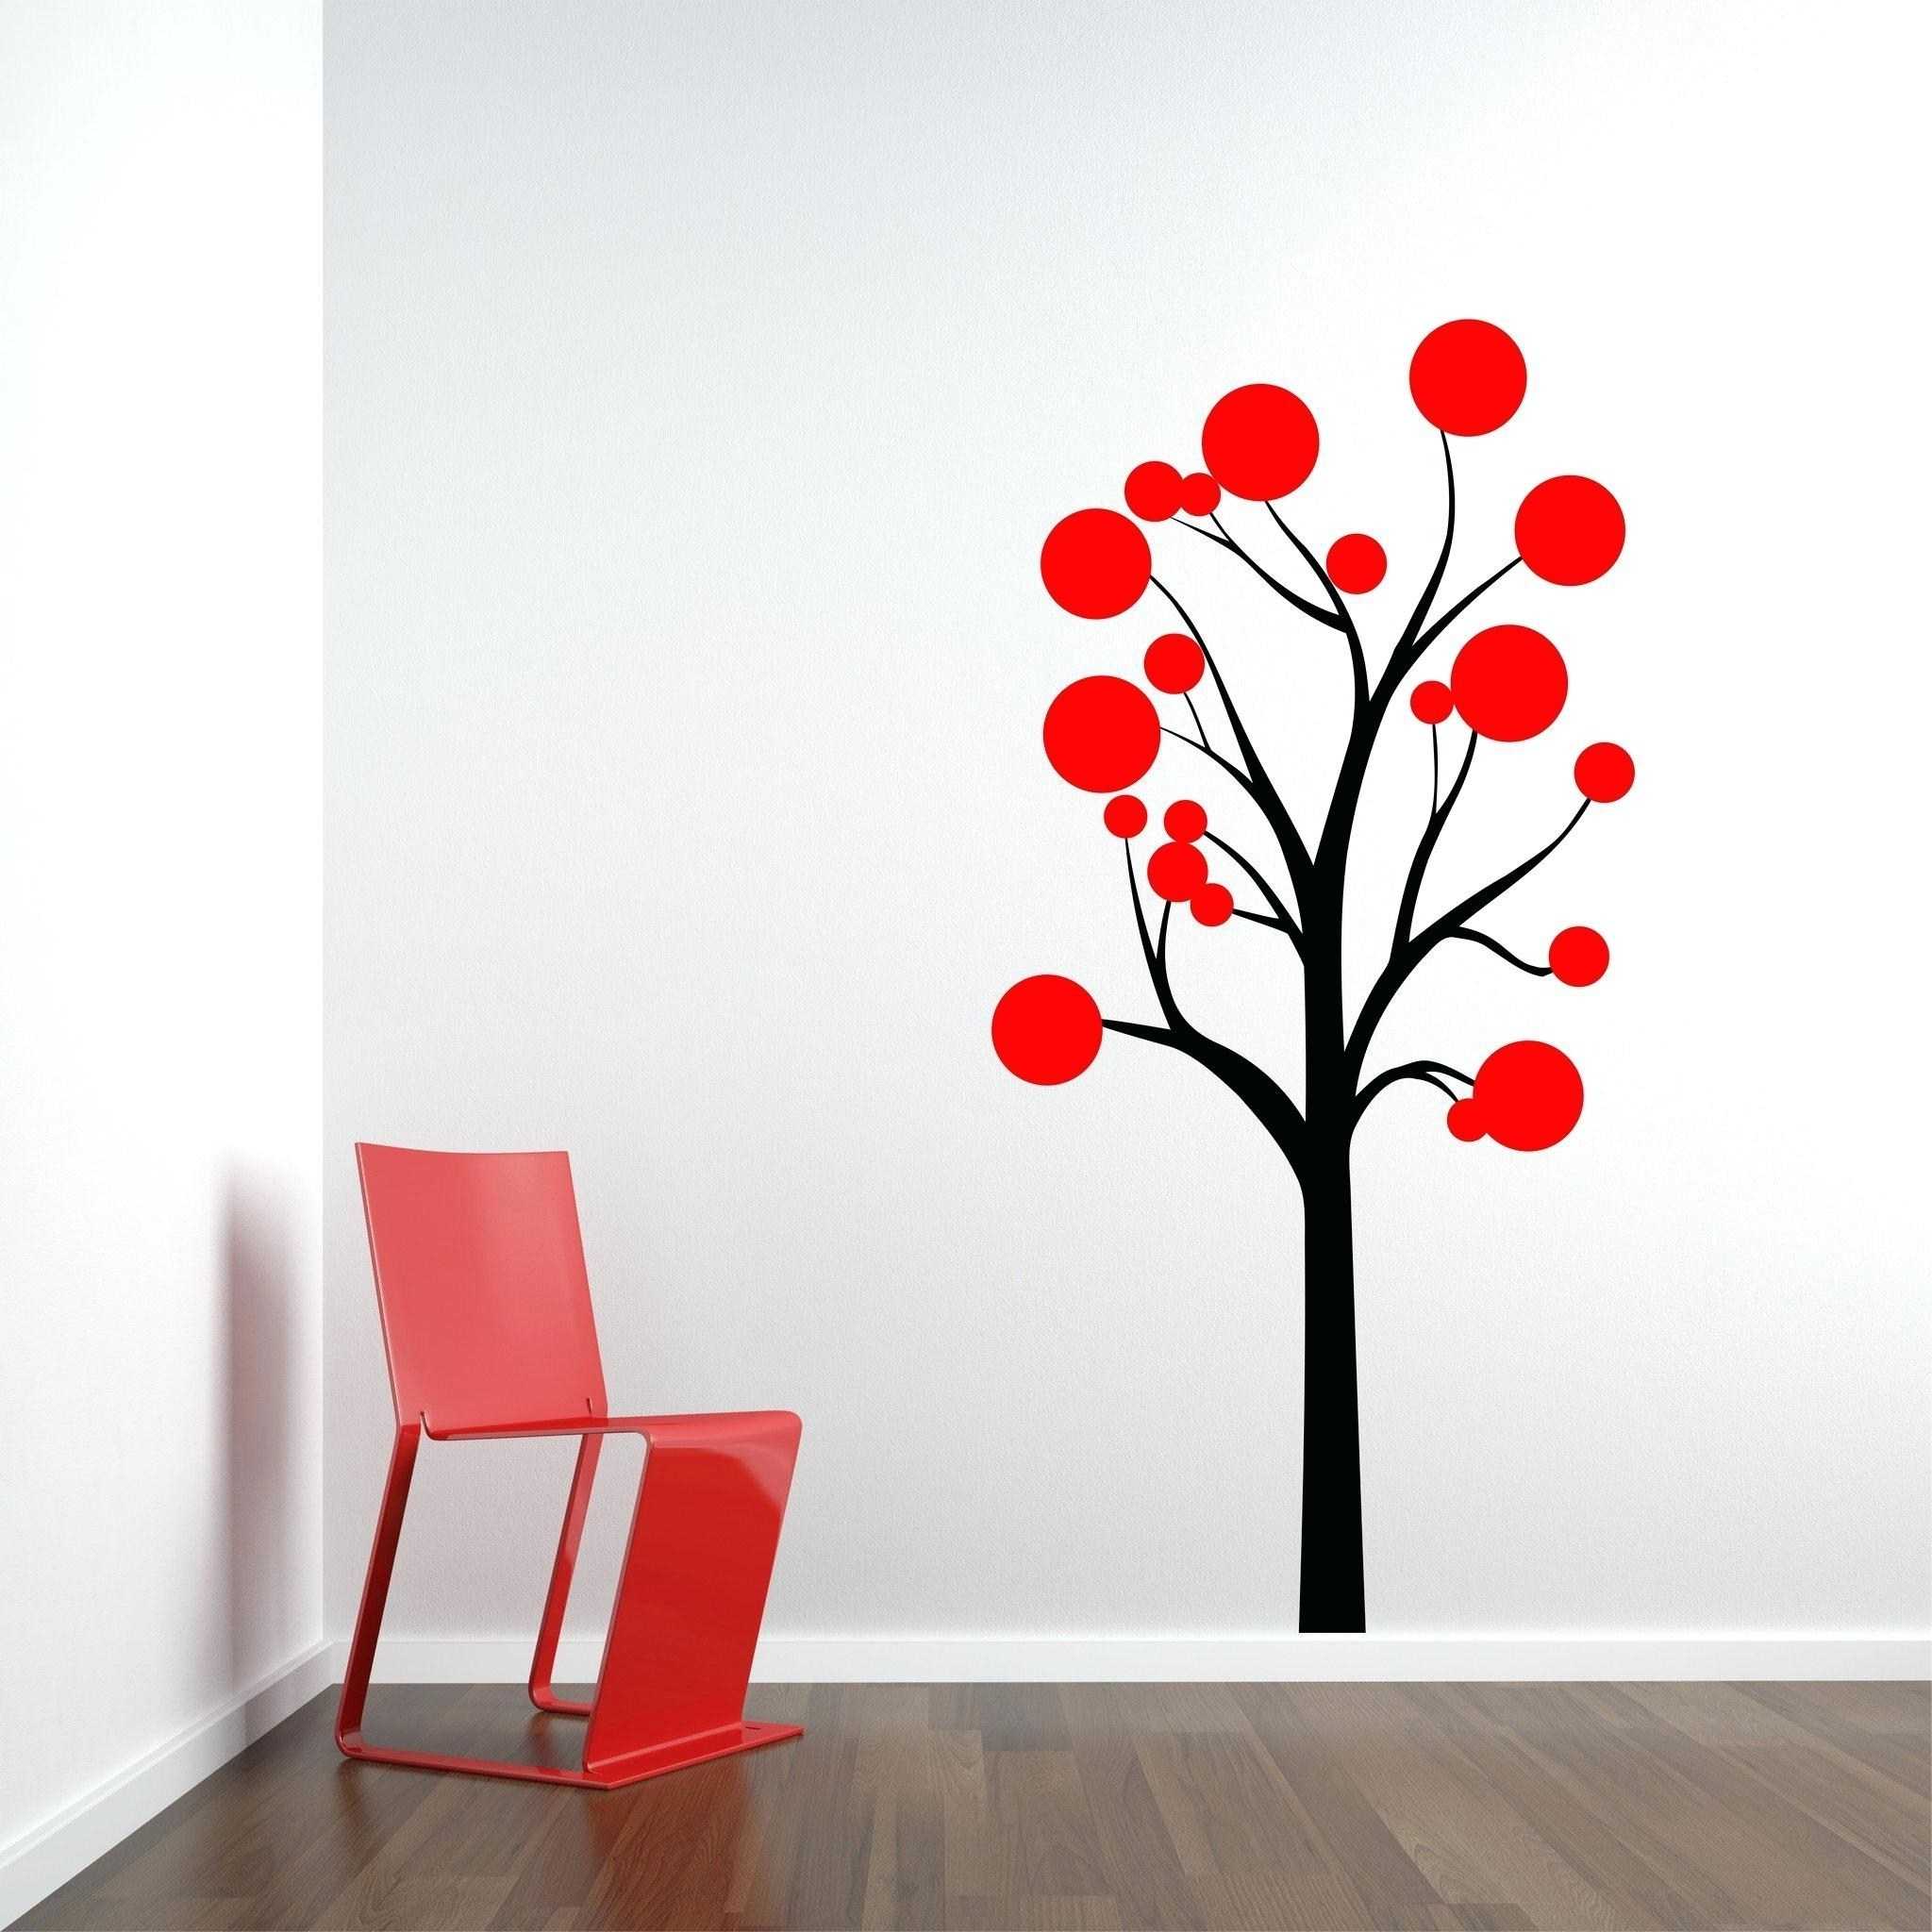 Absorbing Red Cherry Blossom Wall Art Red Cherry Blossom Wall Art pertaining to Cherry Blossom Wall Art (Image 2 of 20)